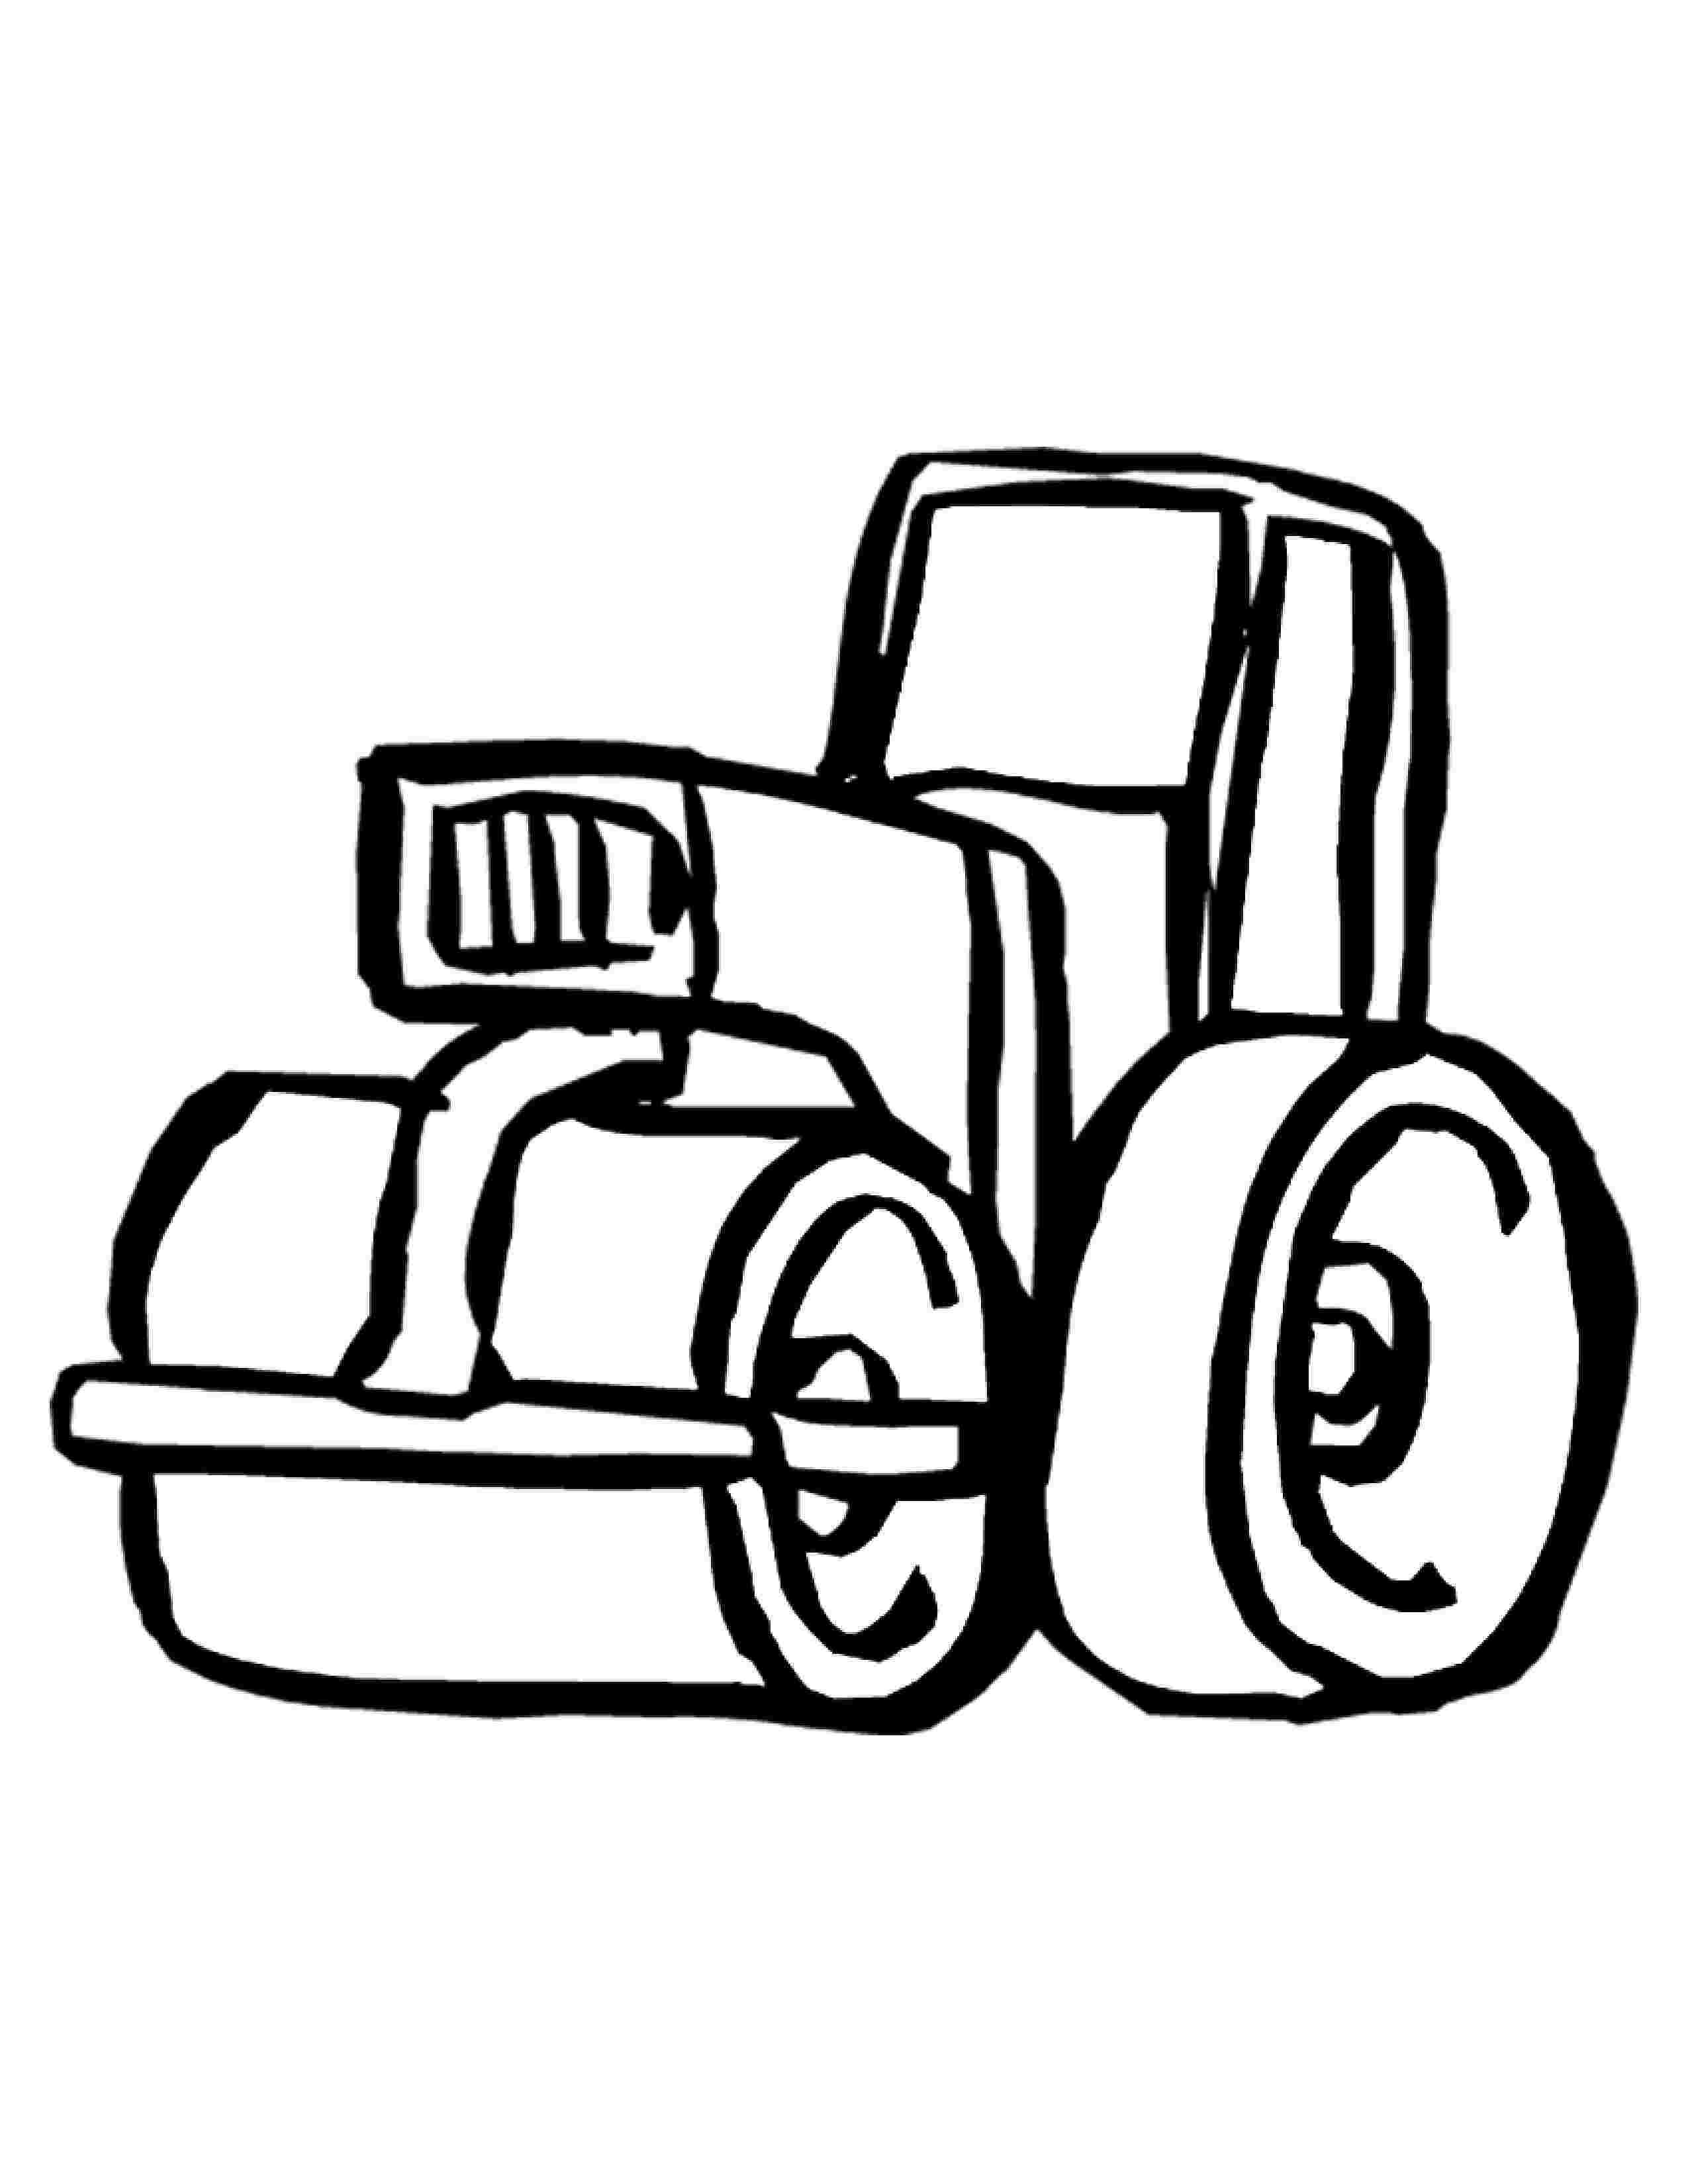 construction equipment coloring pages construction equipment coloring pages coloring pages for pages equipment coloring construction 1 2